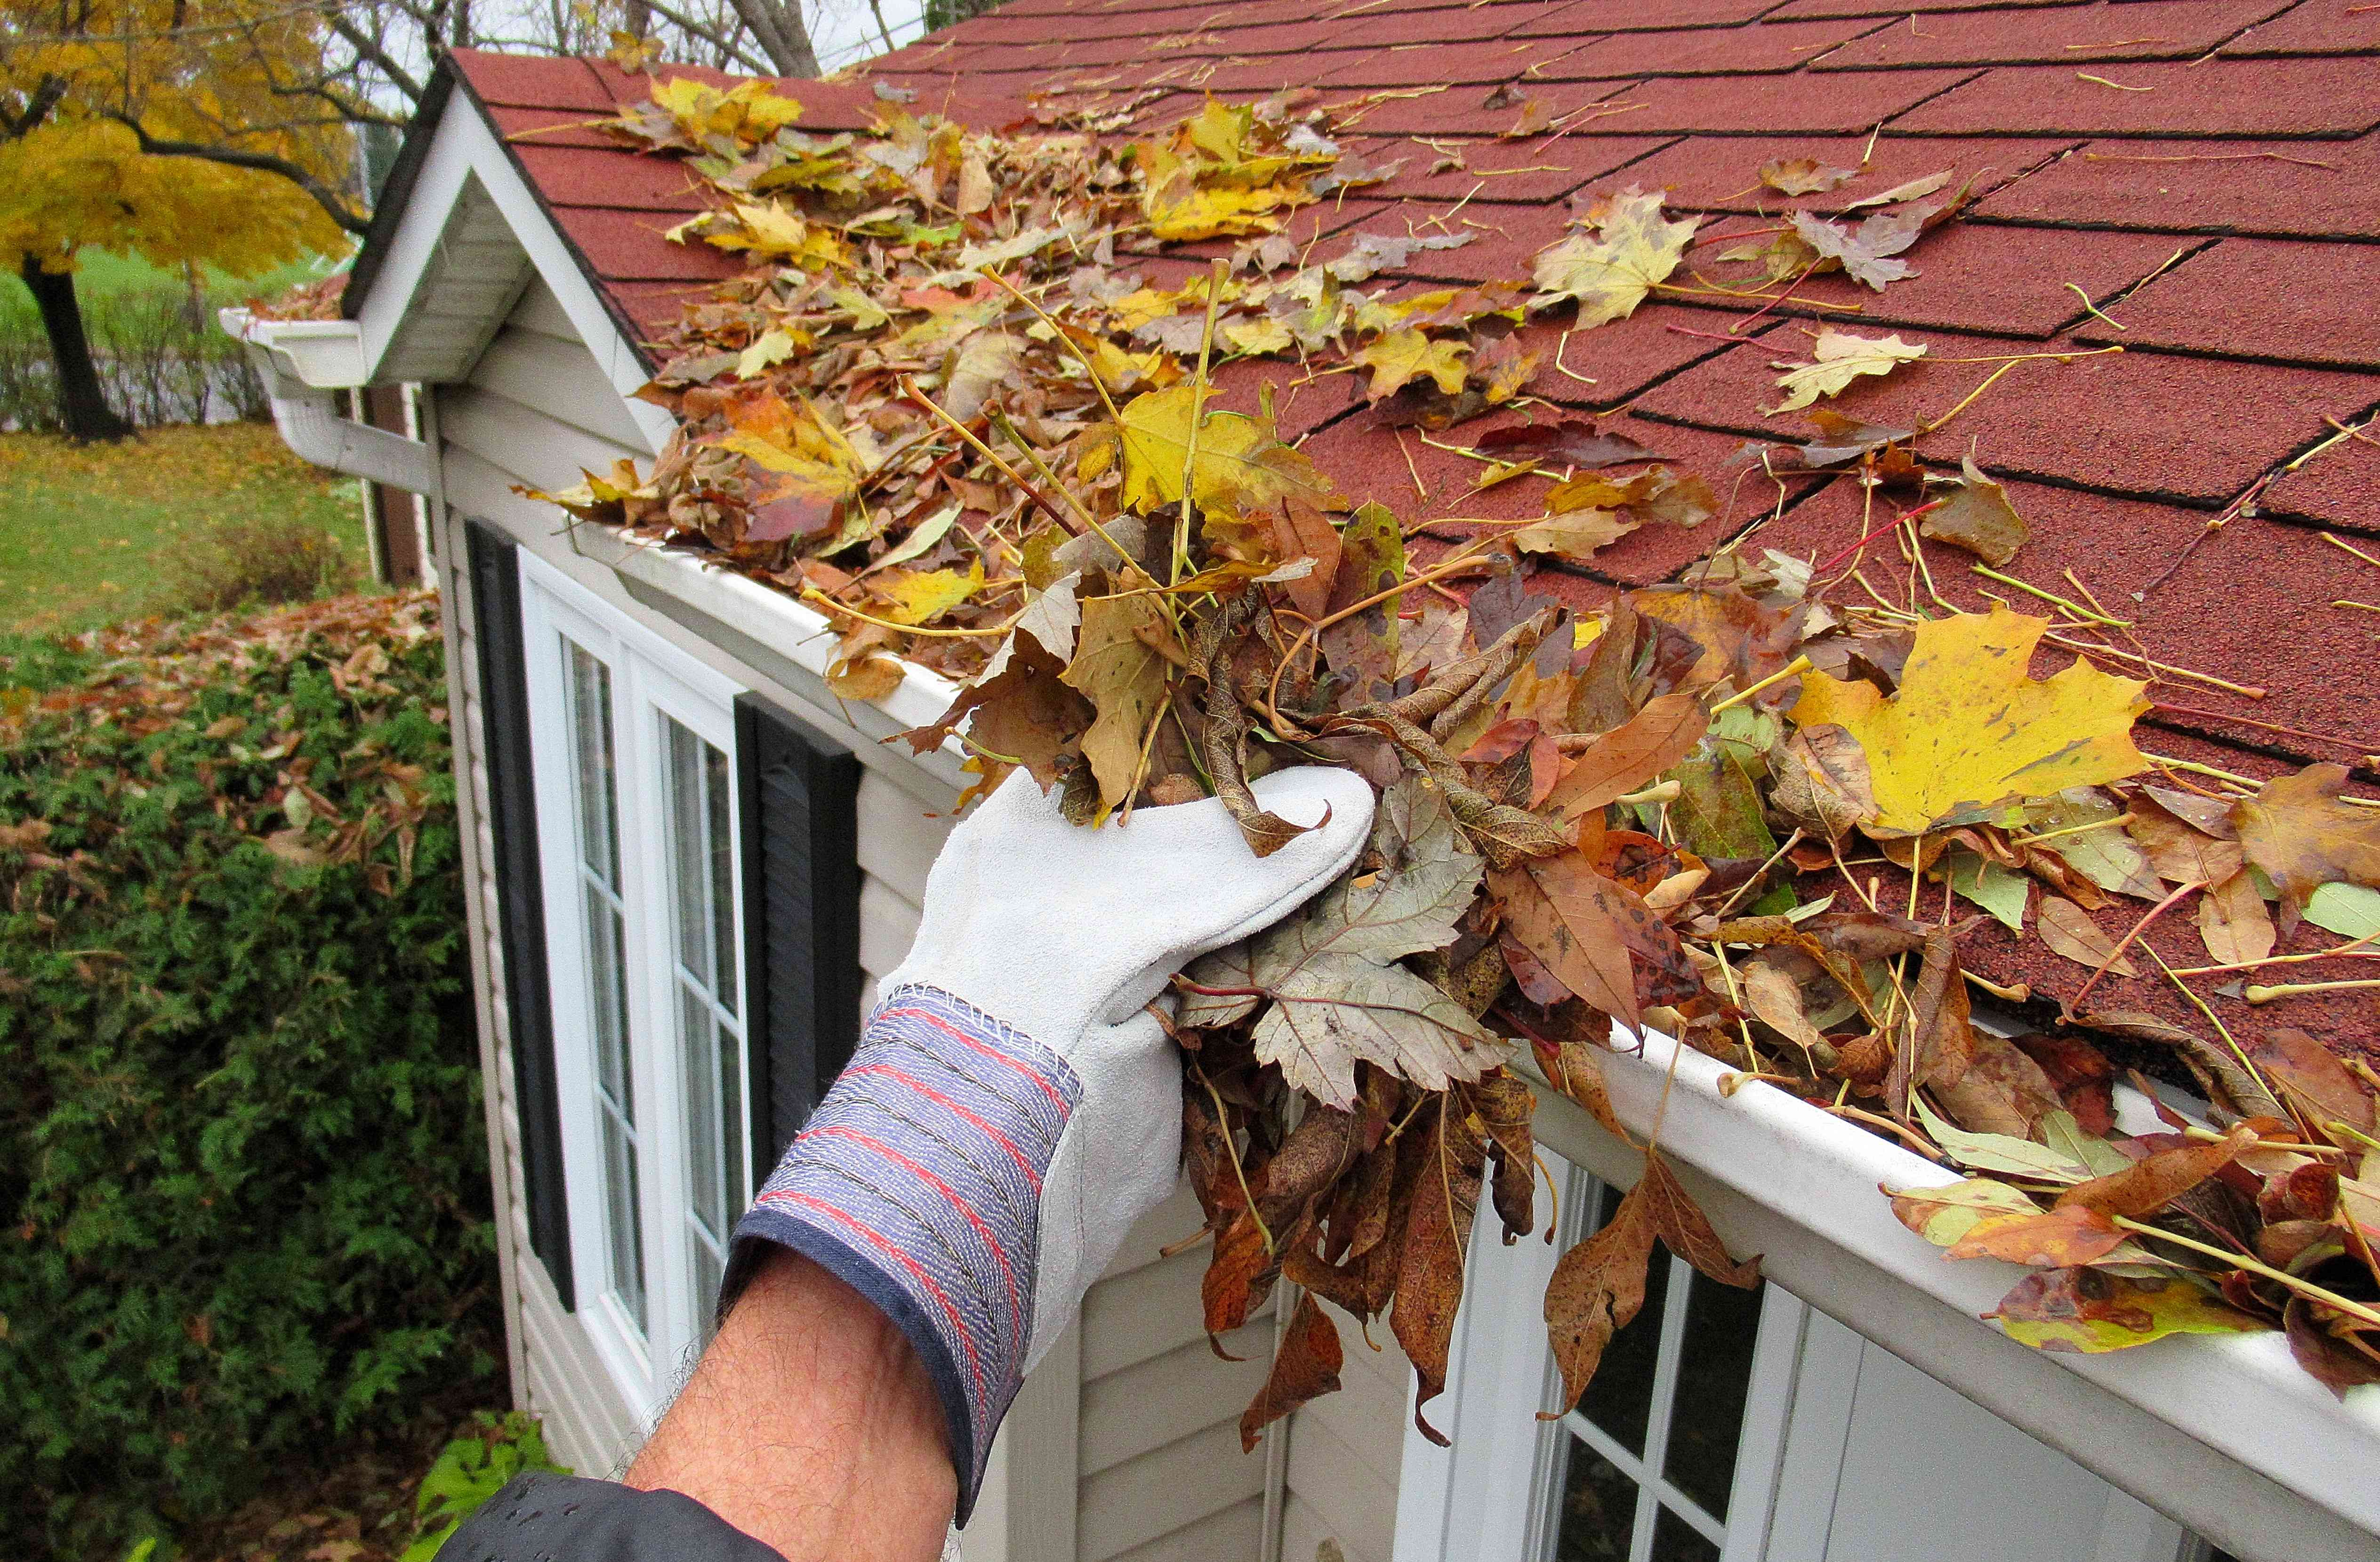 Cleaning Gutters in Autumn